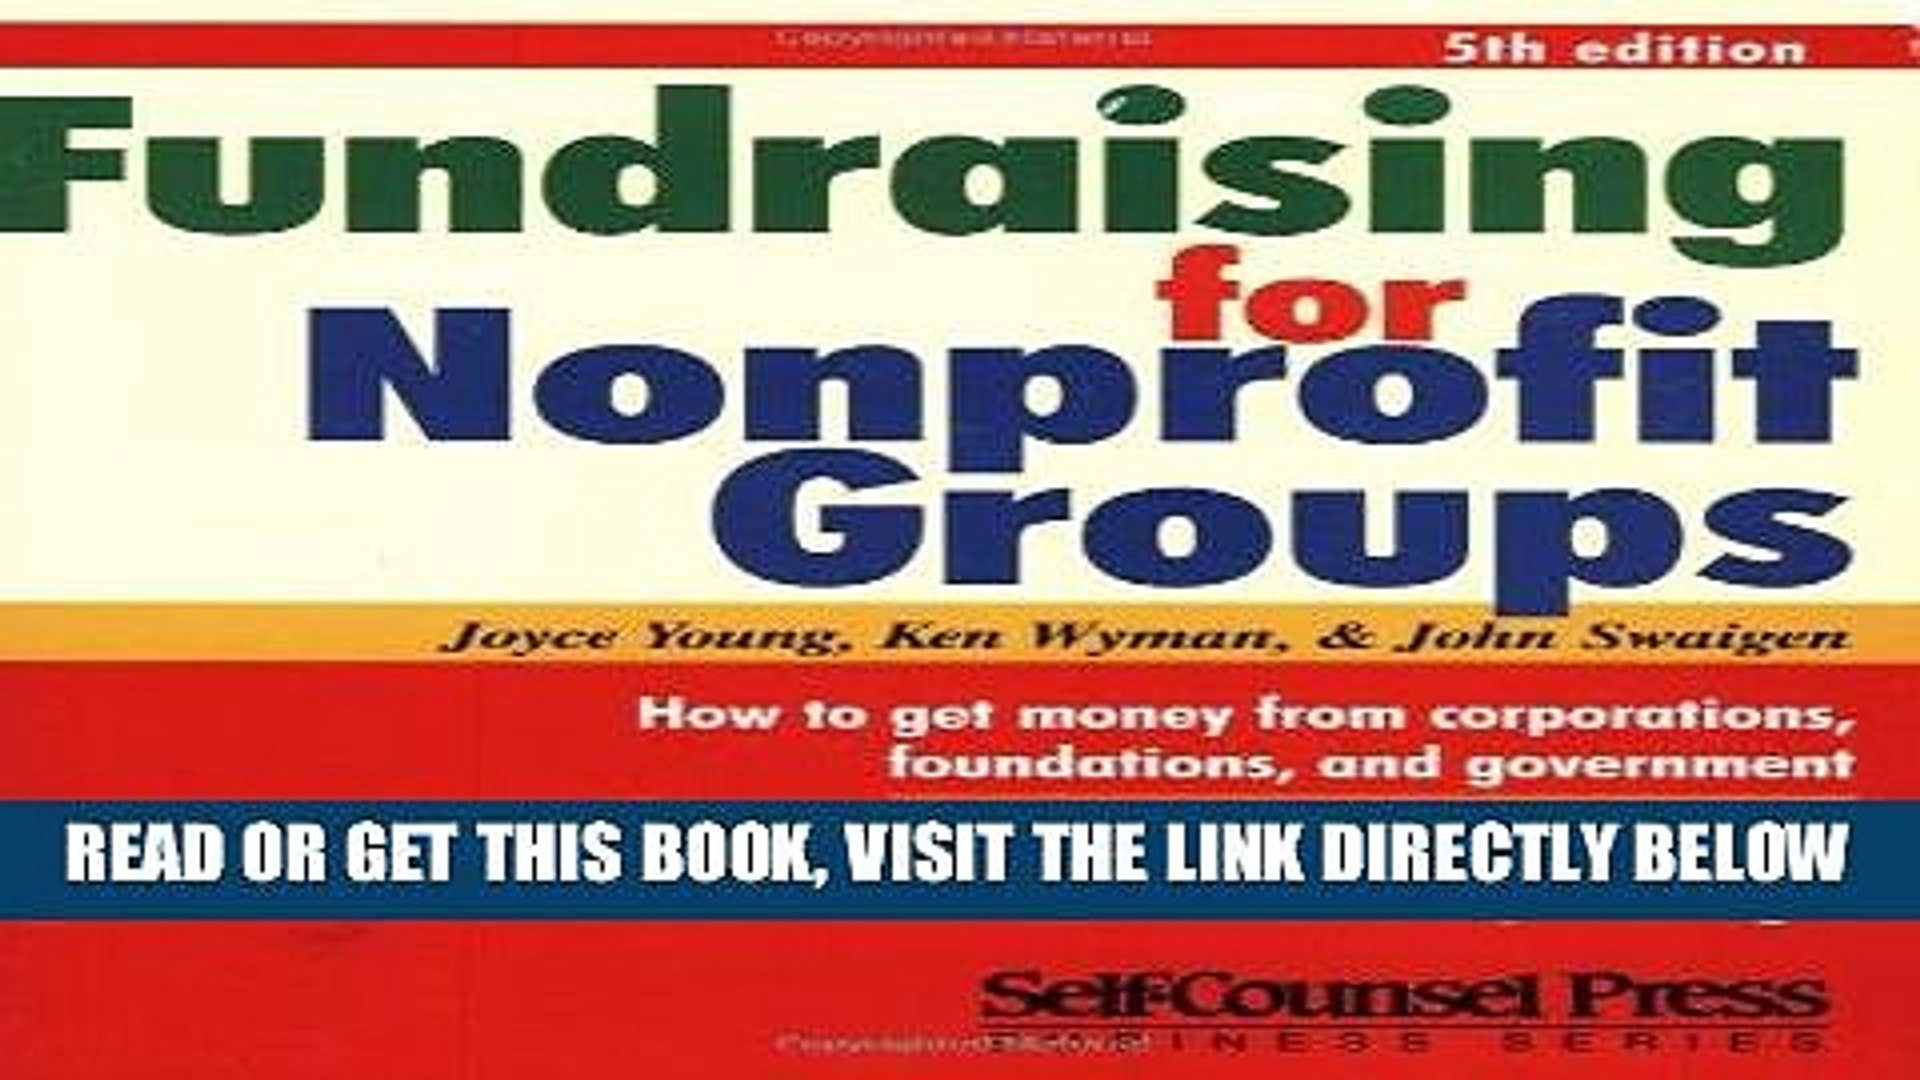 [New] Ebook Fundraising For Non-Profit Groups (Business Series) Free Online